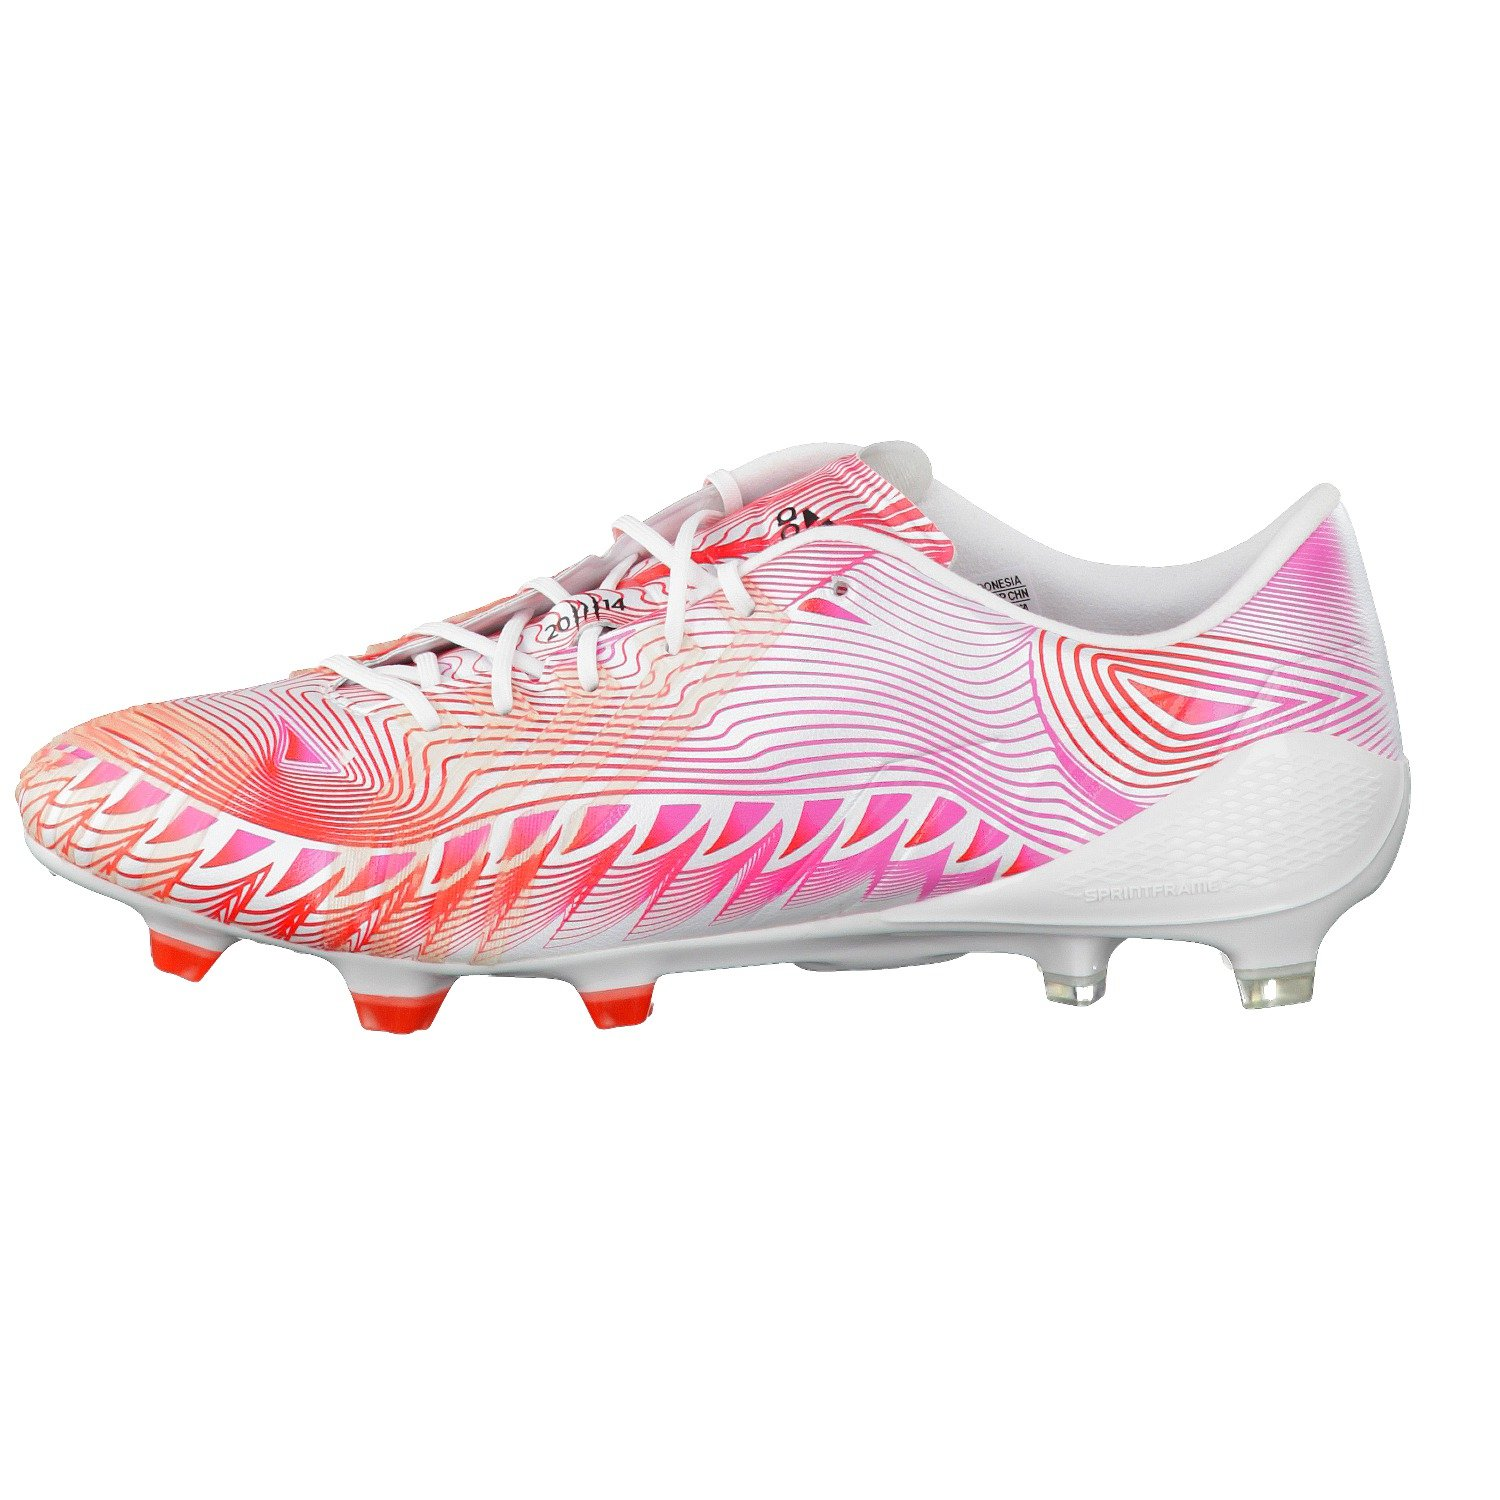 adidas chaussures football nitrocharge 1.0 crazylight fg homme